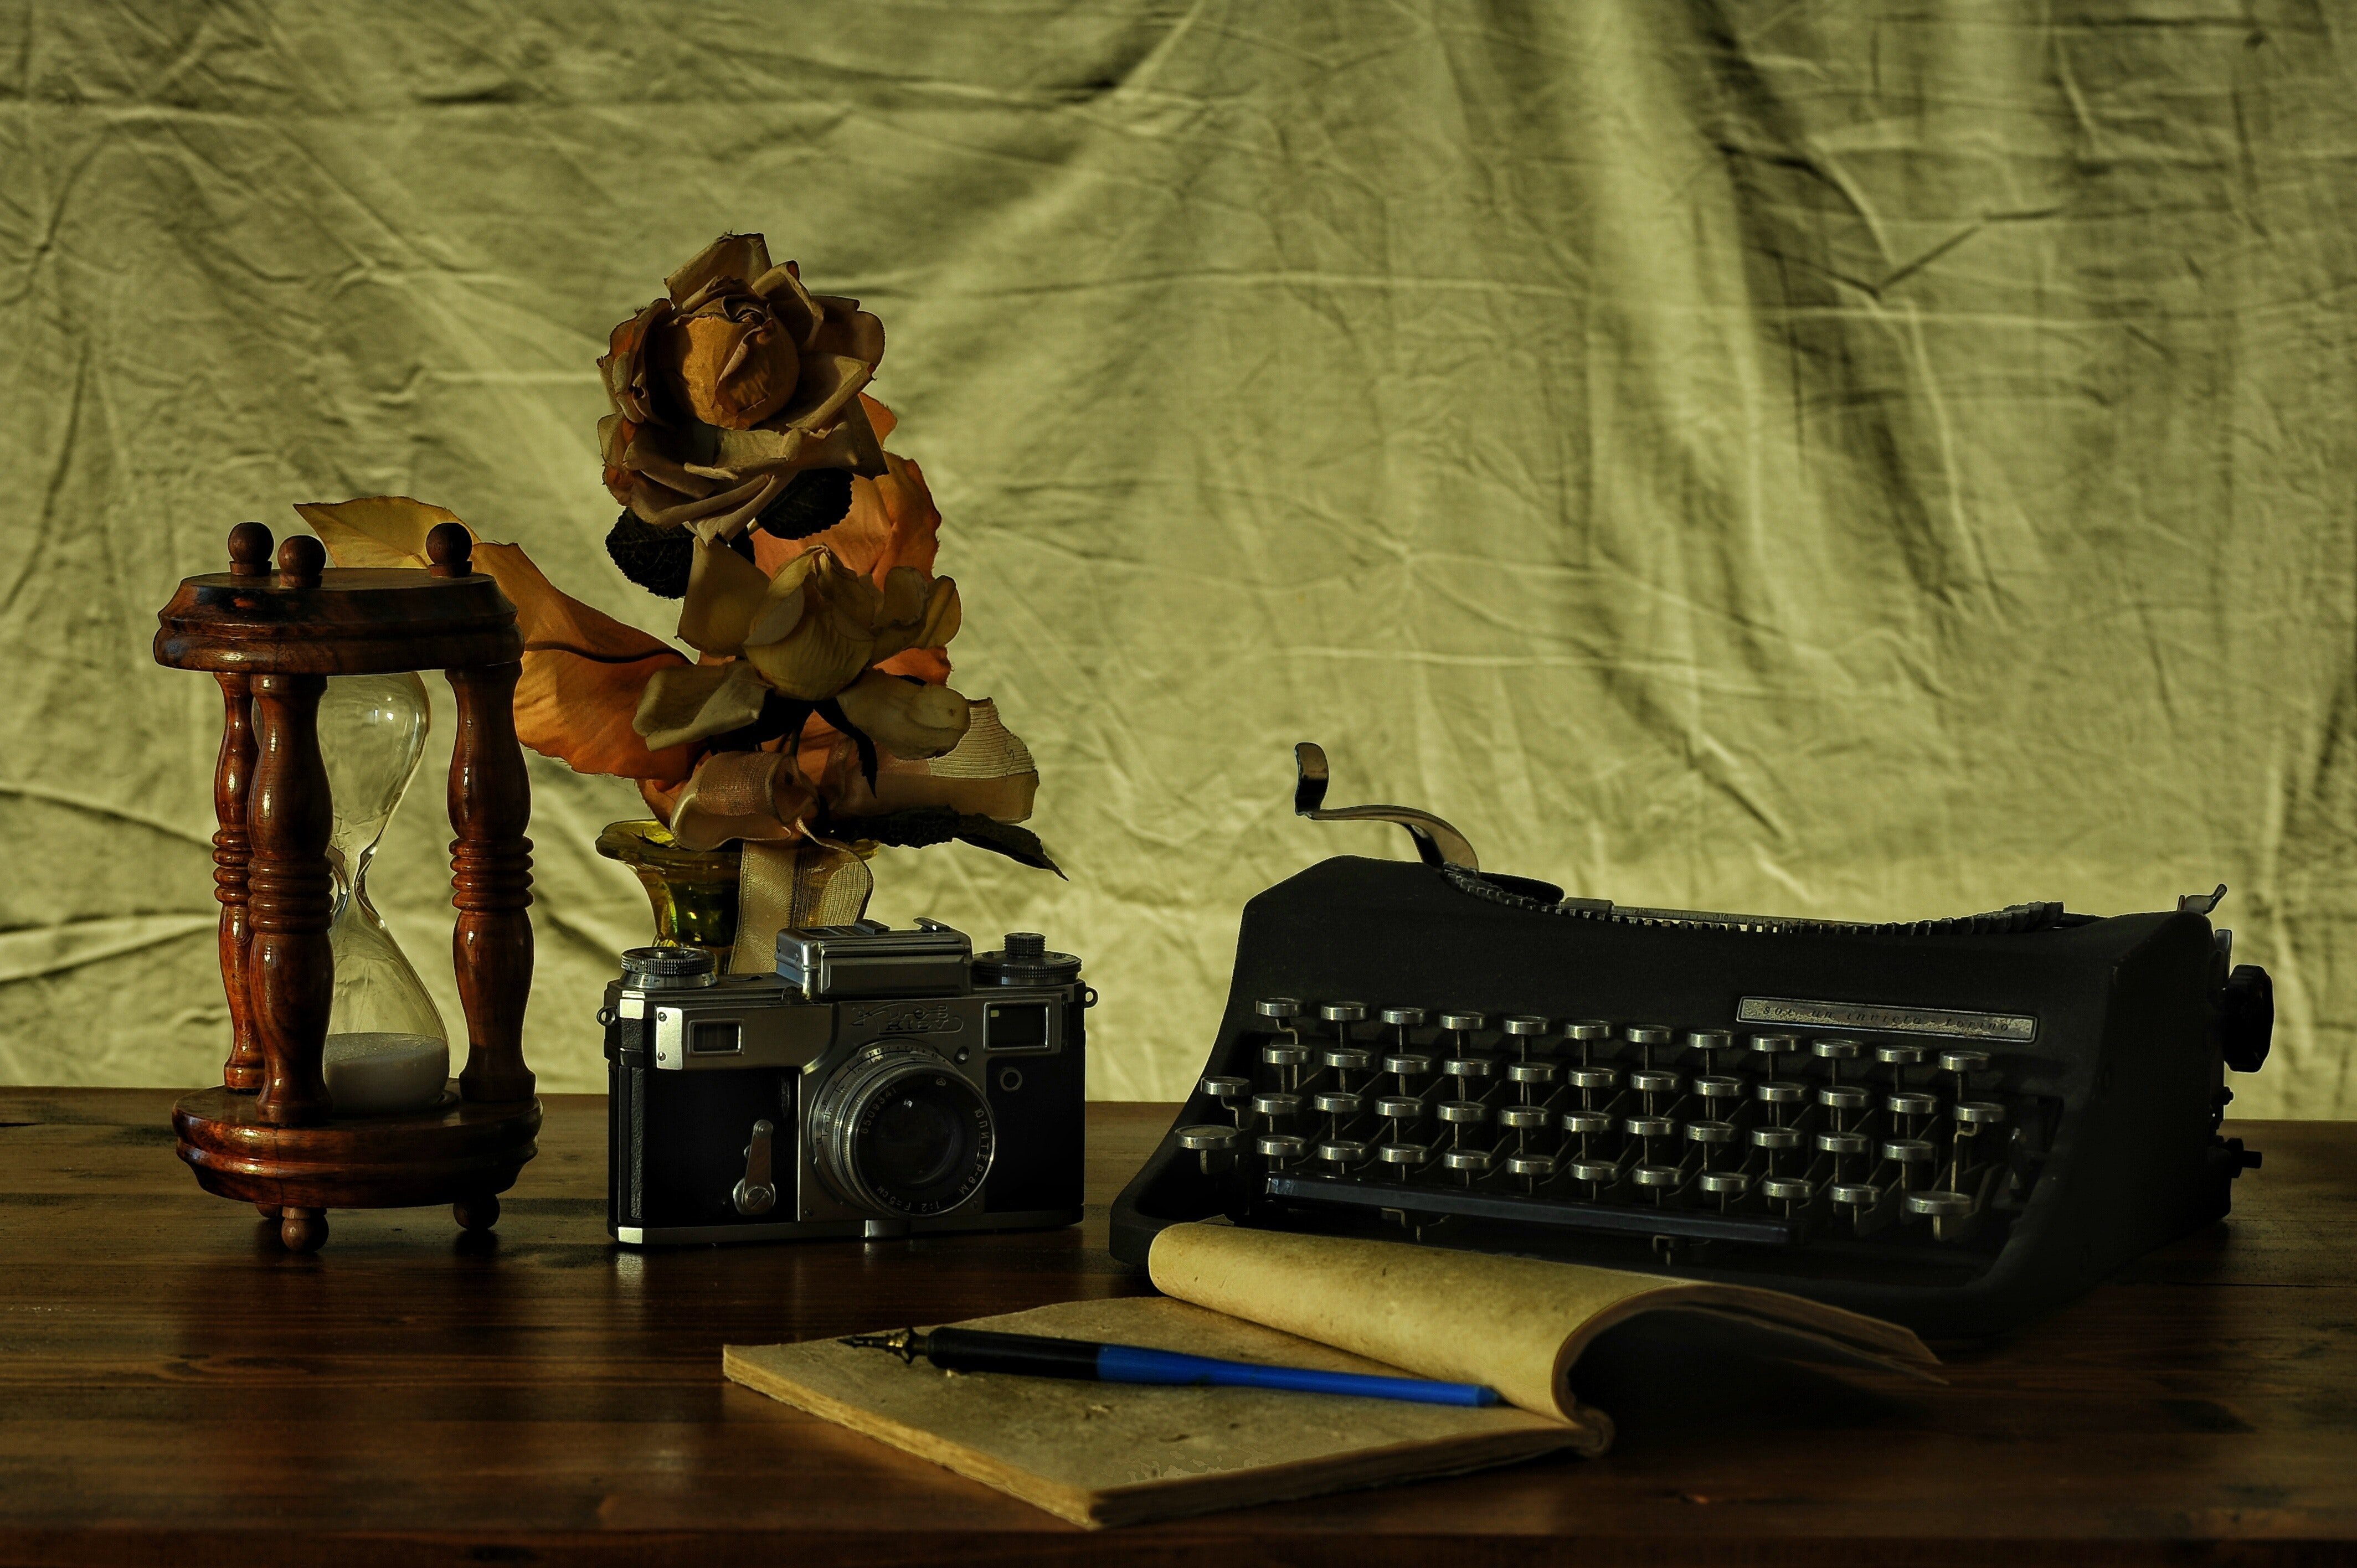 Brown Notebook in Between of a Type Writer and Gray and Black Camera, Adult, Room, Wood, Vintage, HQ Photo